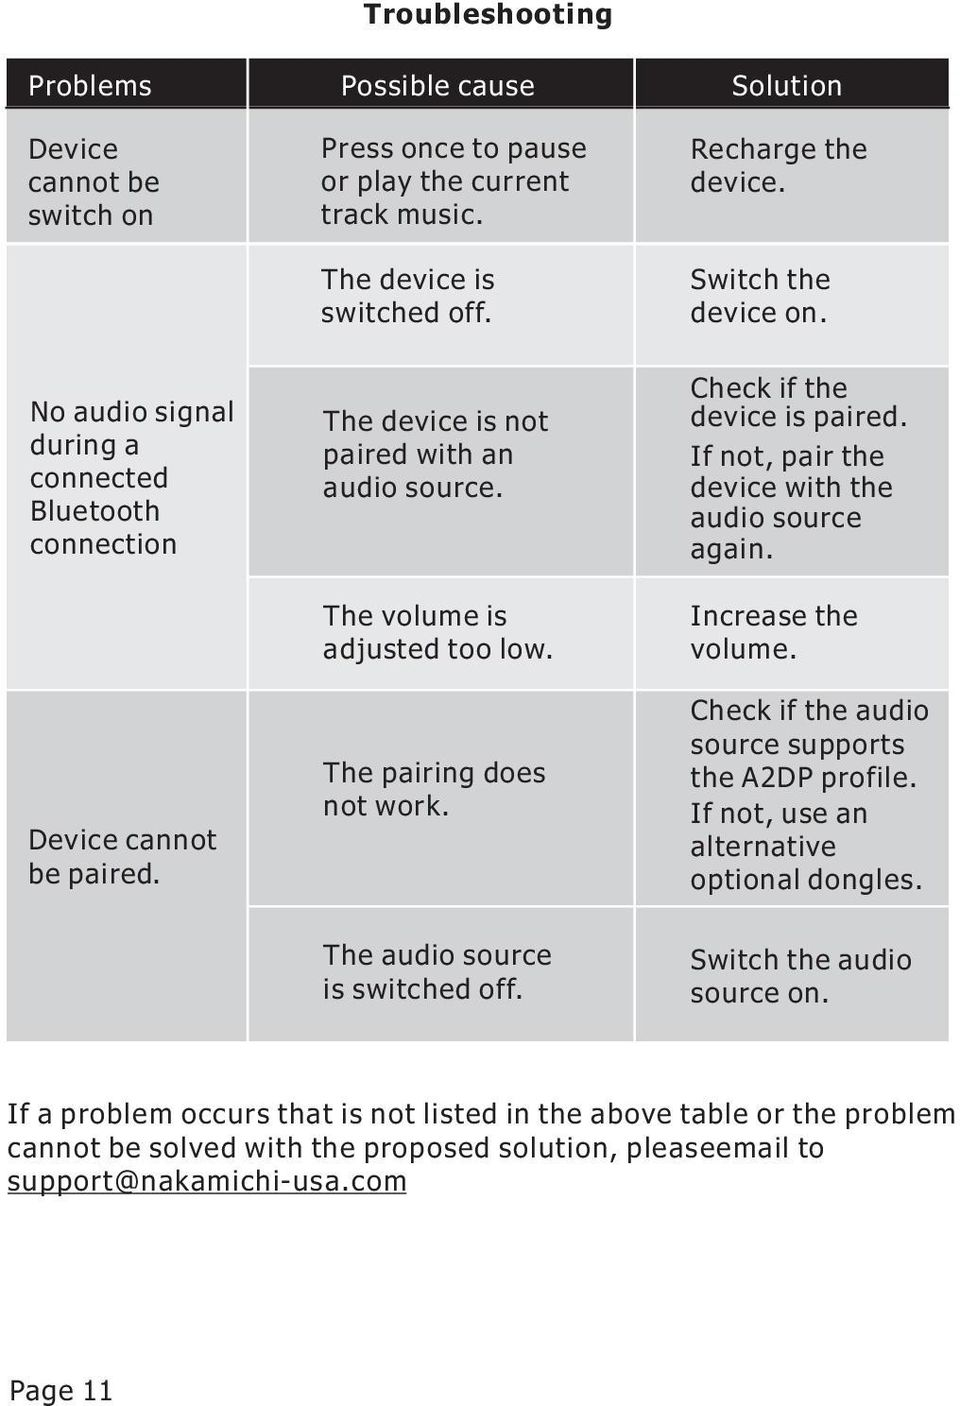 Recharge the device. Switch the device on. Check if the device is paired. If not, pair the device with the audio source again. Increase the volume. Check if the audio source supports the A2DP profile.